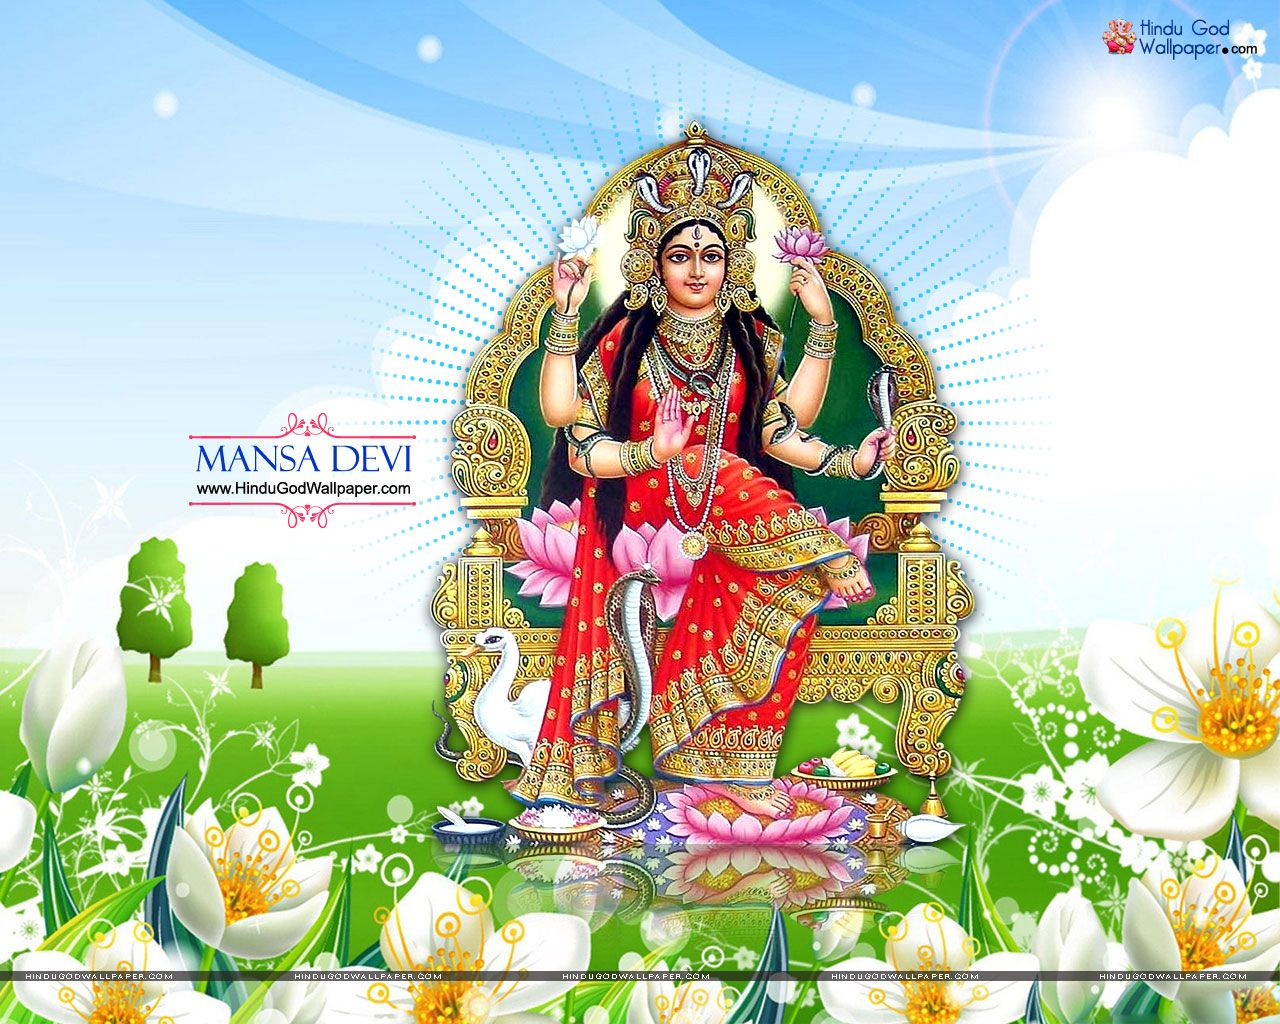 Mata Mansa Devi Wallpaper Free Download | Hindu Goddess